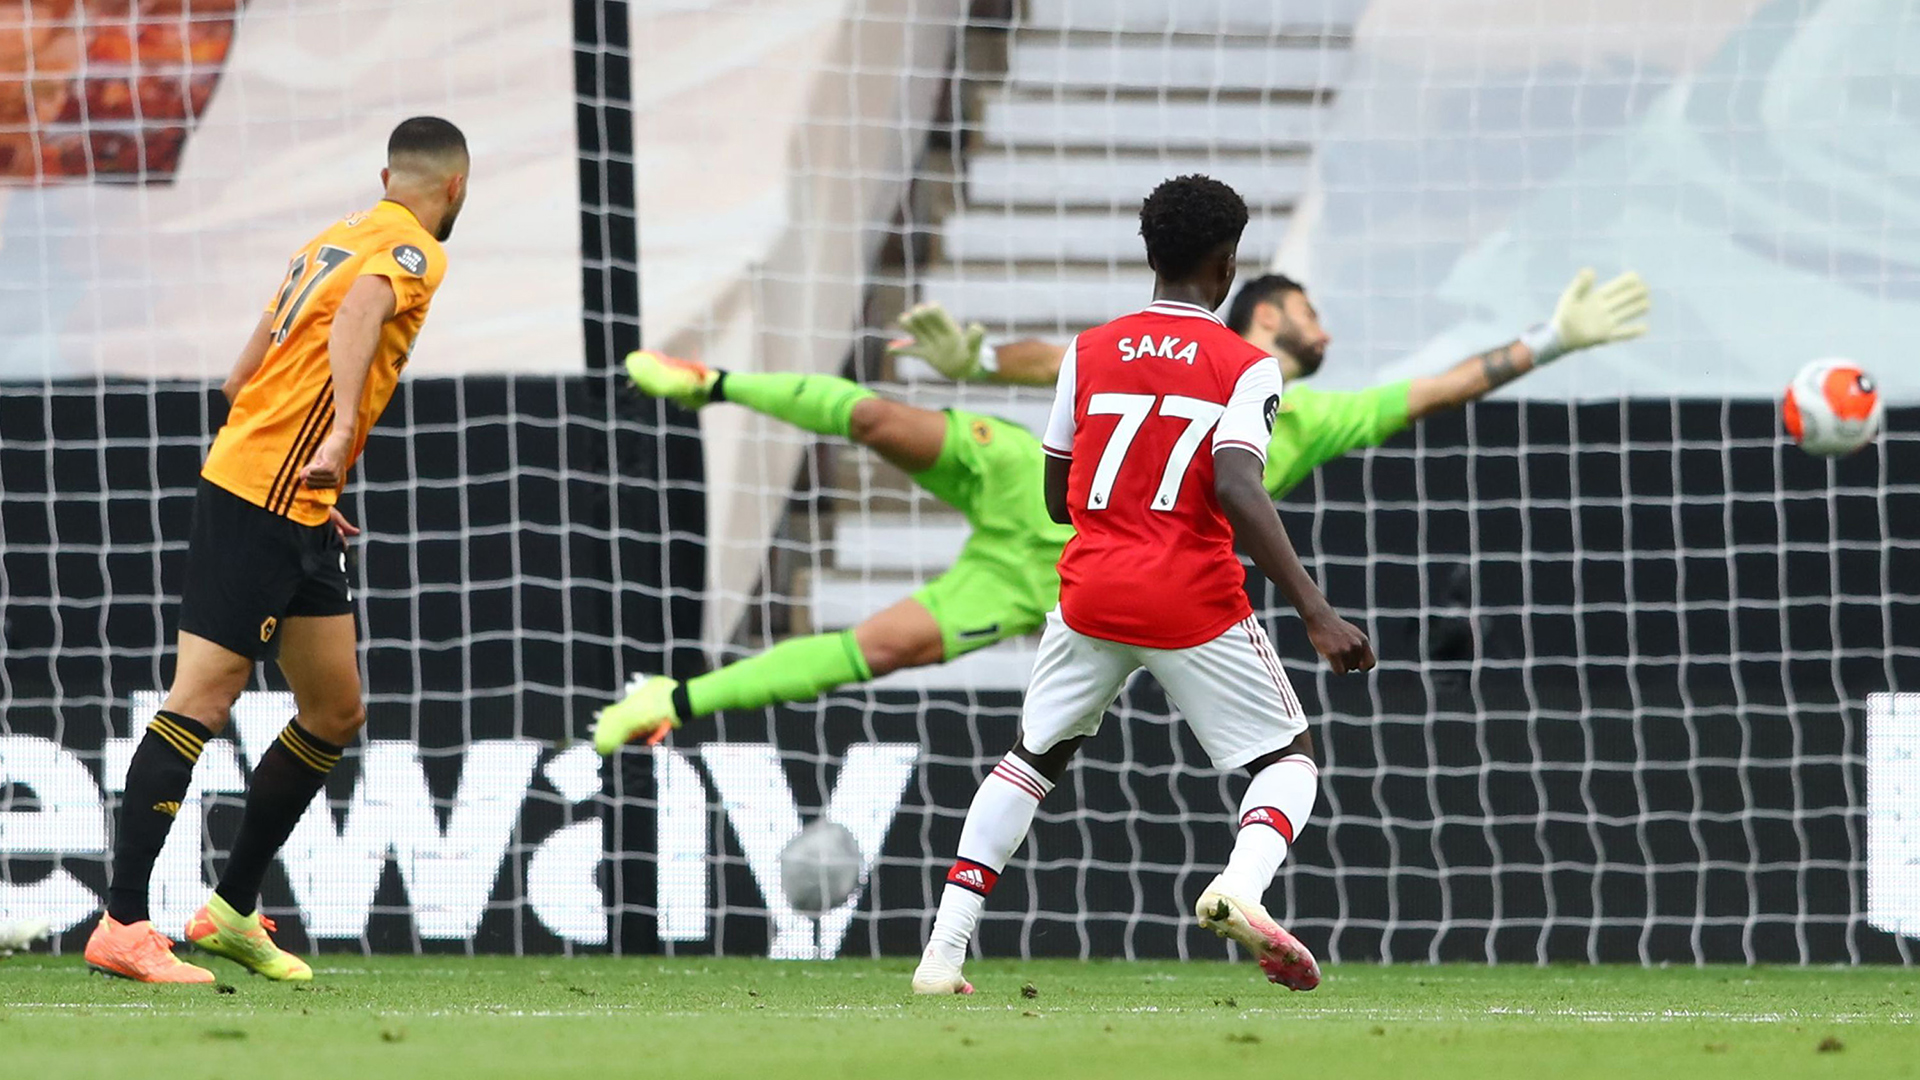 Arsenal's Saka scores first Premier League goal to end Wolves run of clean sheets